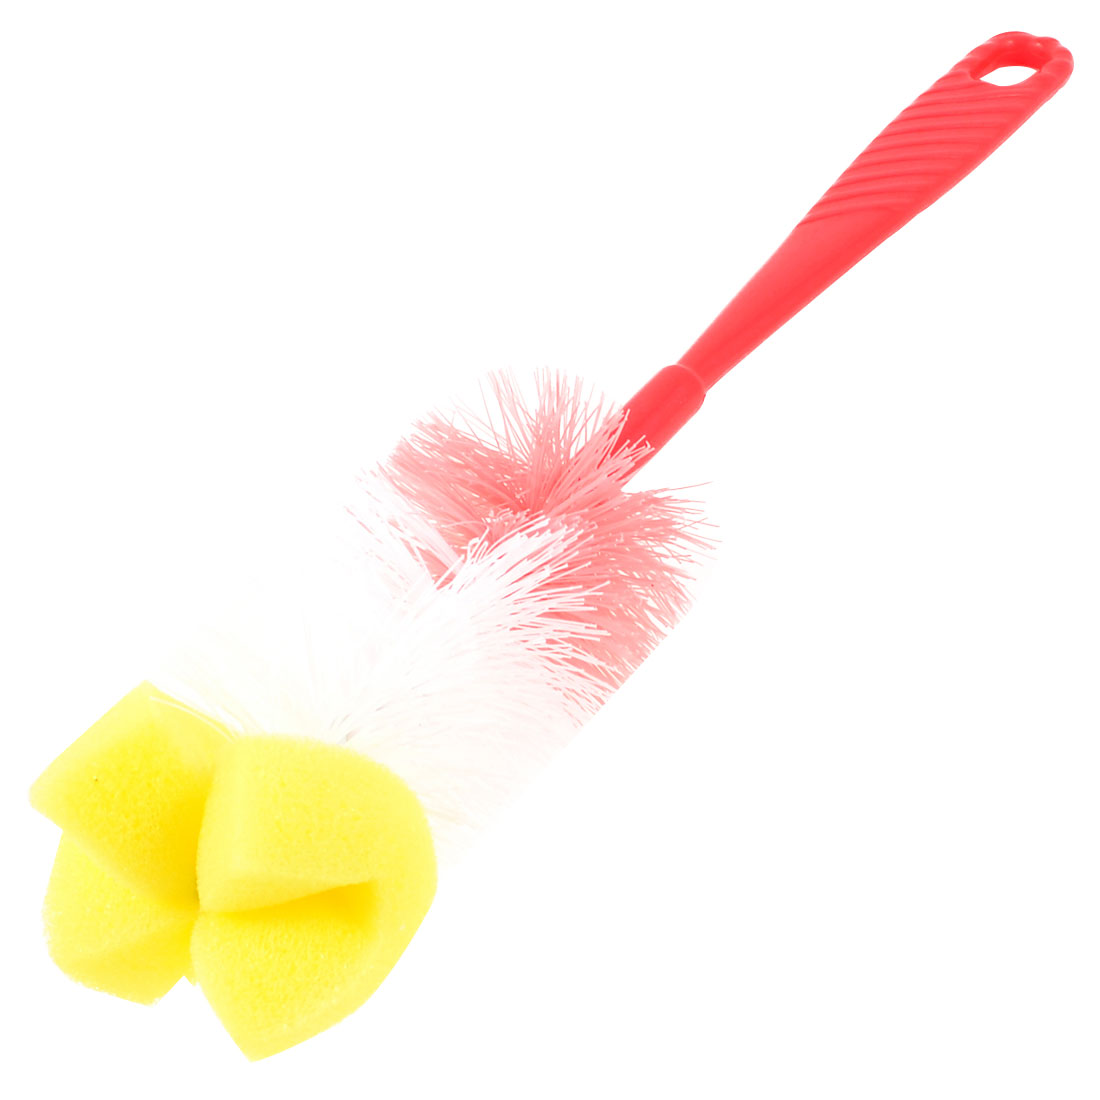 Red Handle Plastic Hair Sponge Cleaning Washing Tumber Cup Bottle Brush